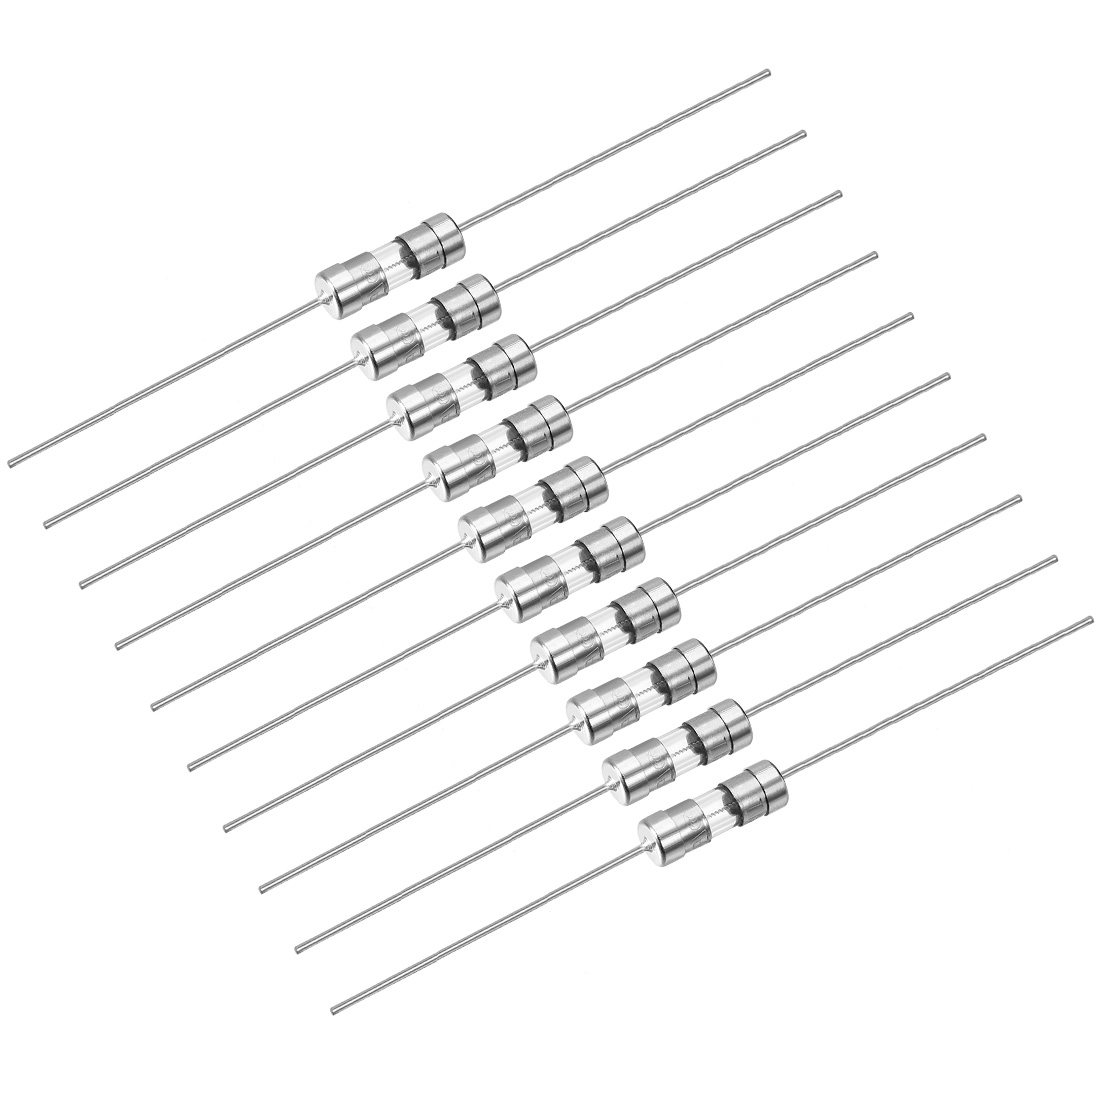 Slow Blow Fuse Time Delay Axial Lead Glass Fuses 3.6mm x 10mm 250V T2.5A 10Pcs